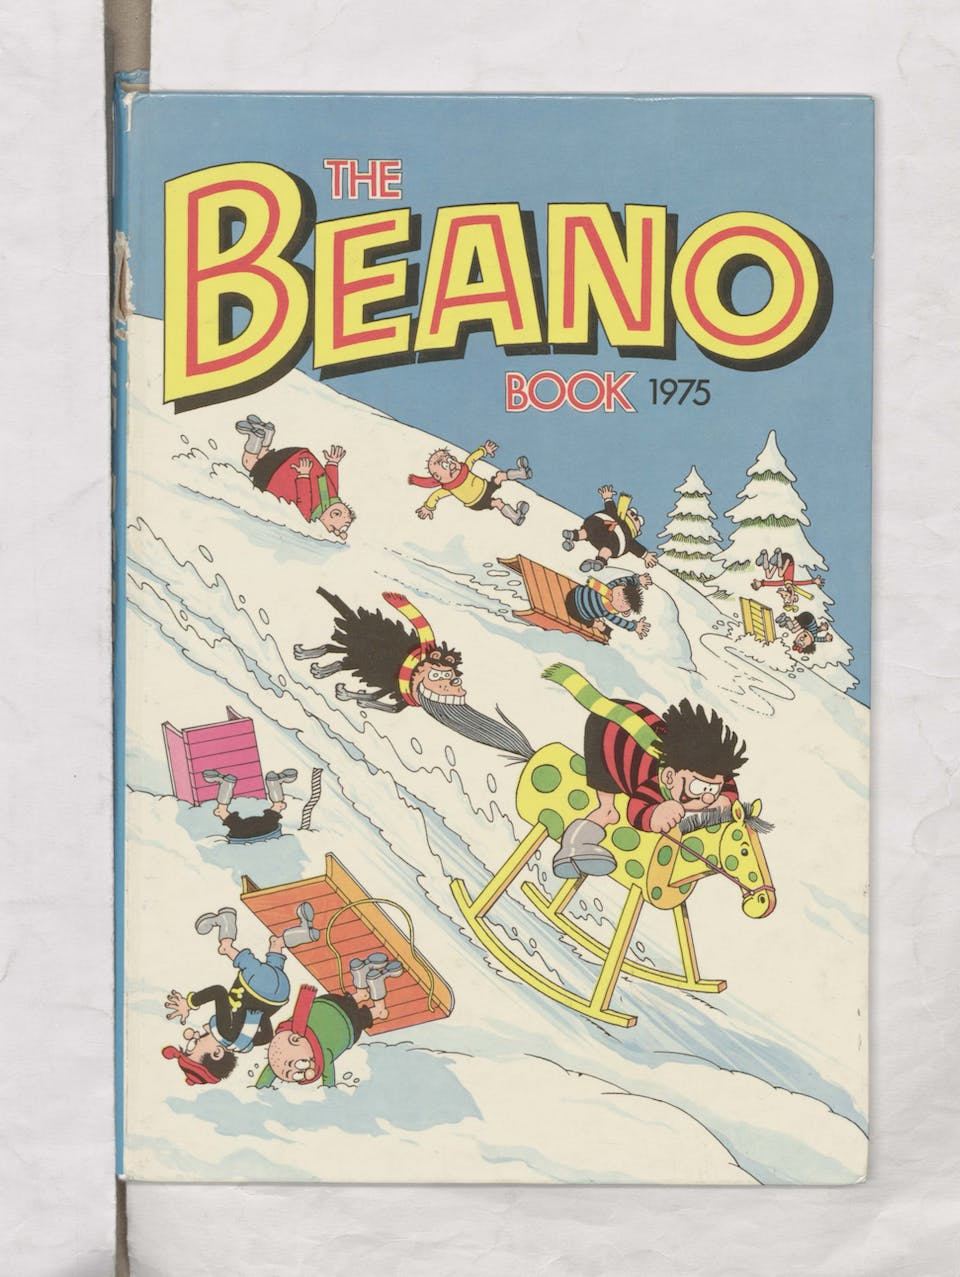 Beano Book 1975 - Snow Covered